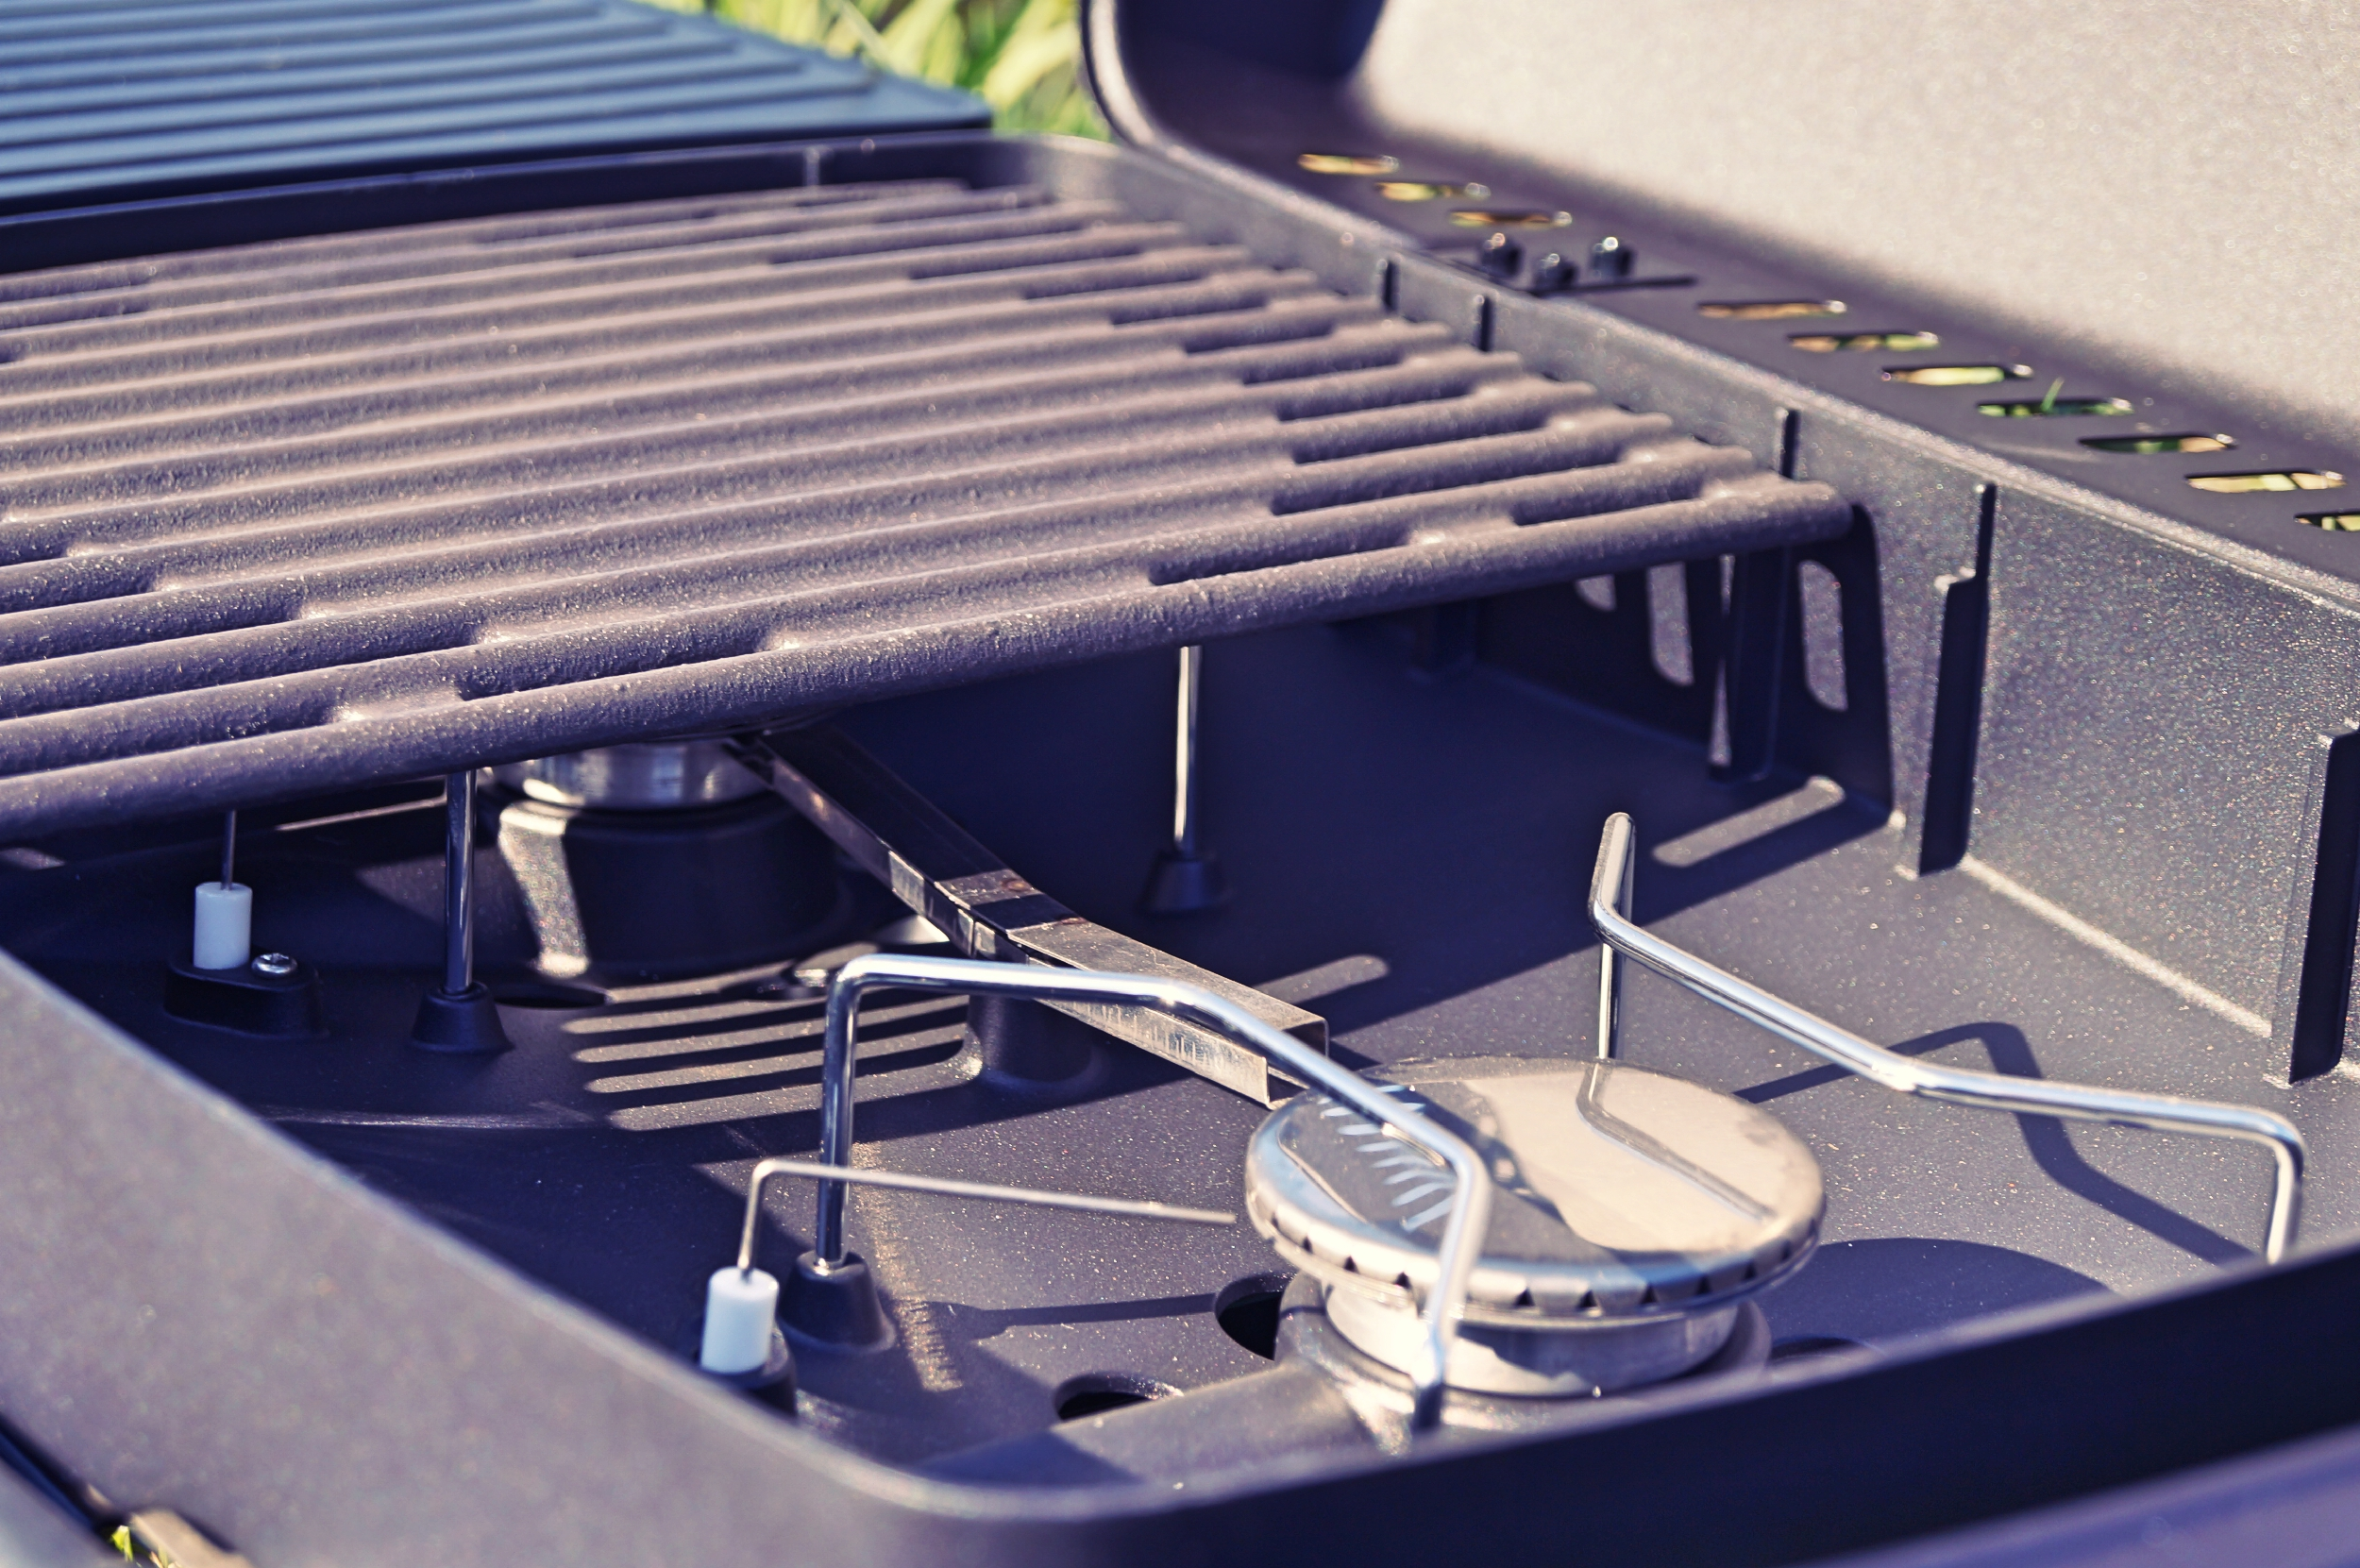 Enders Gasgrill Im Test : Enders campinggrill explorer test campinggrill vergleich tests